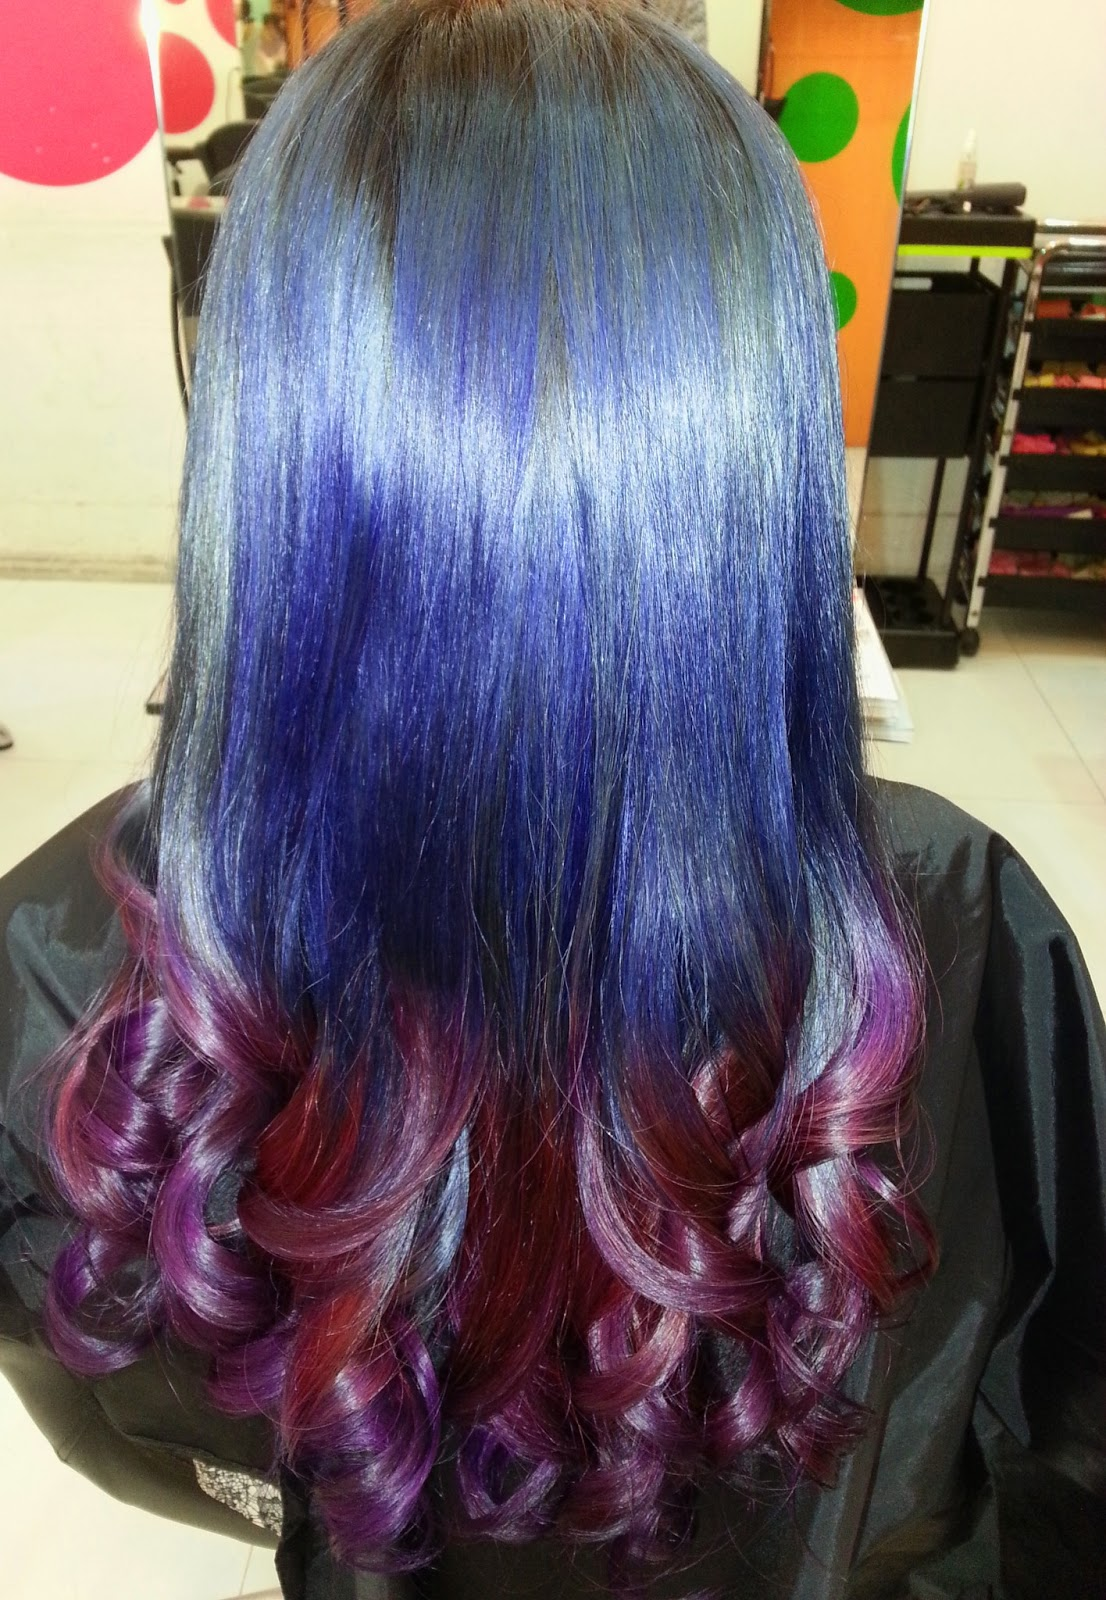 Red Purple Ombre Hair That's the coolest hair colour